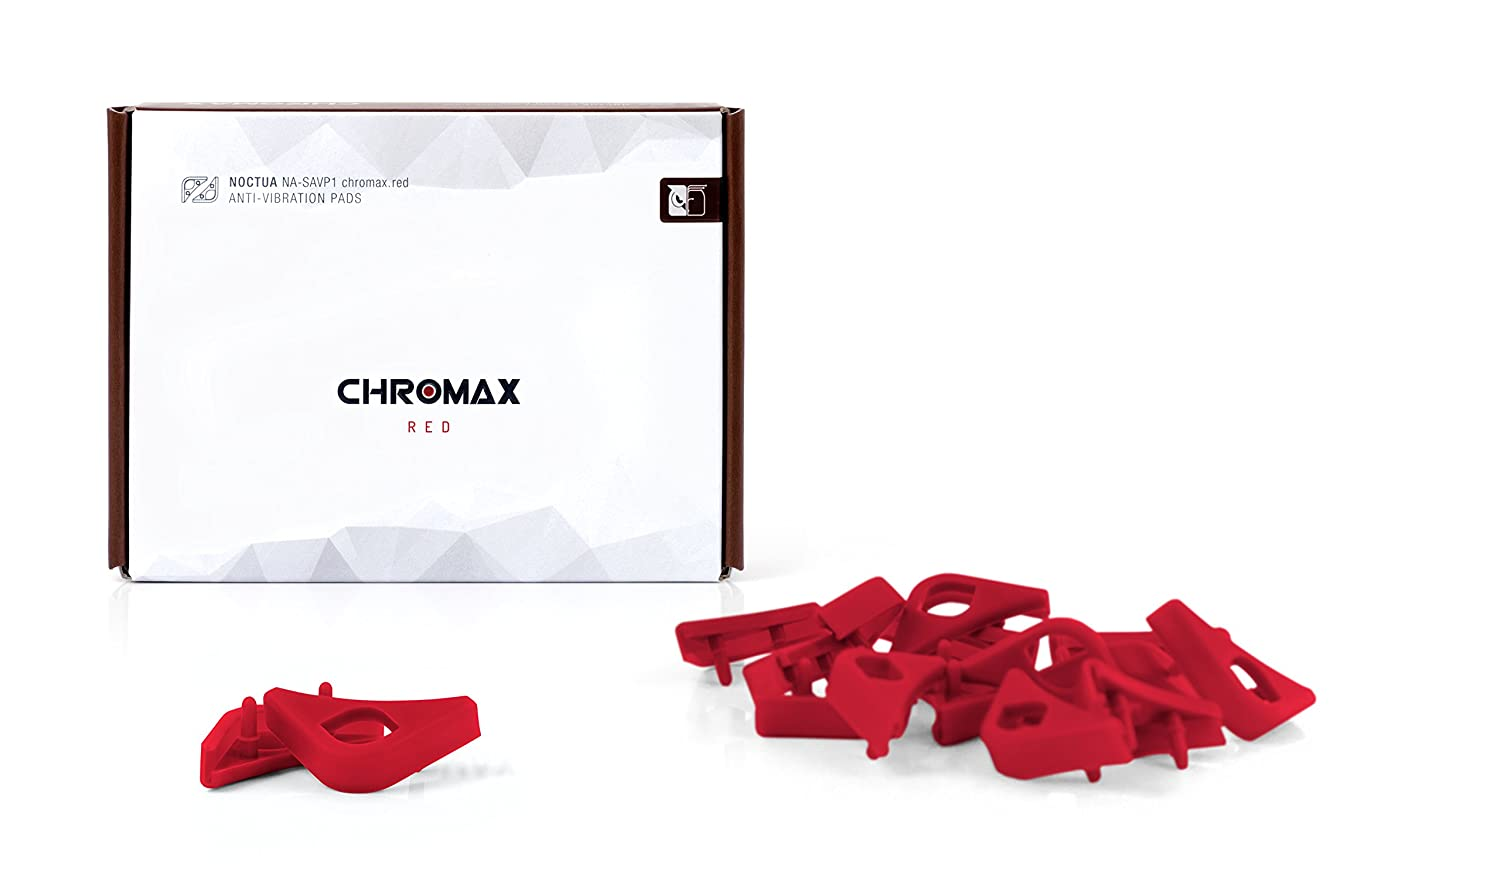 Noctua NA-SAVP1 chromax.red, Anti-Vibration Pads for 120/140mm Noctua Fans (Red, 16-pack)